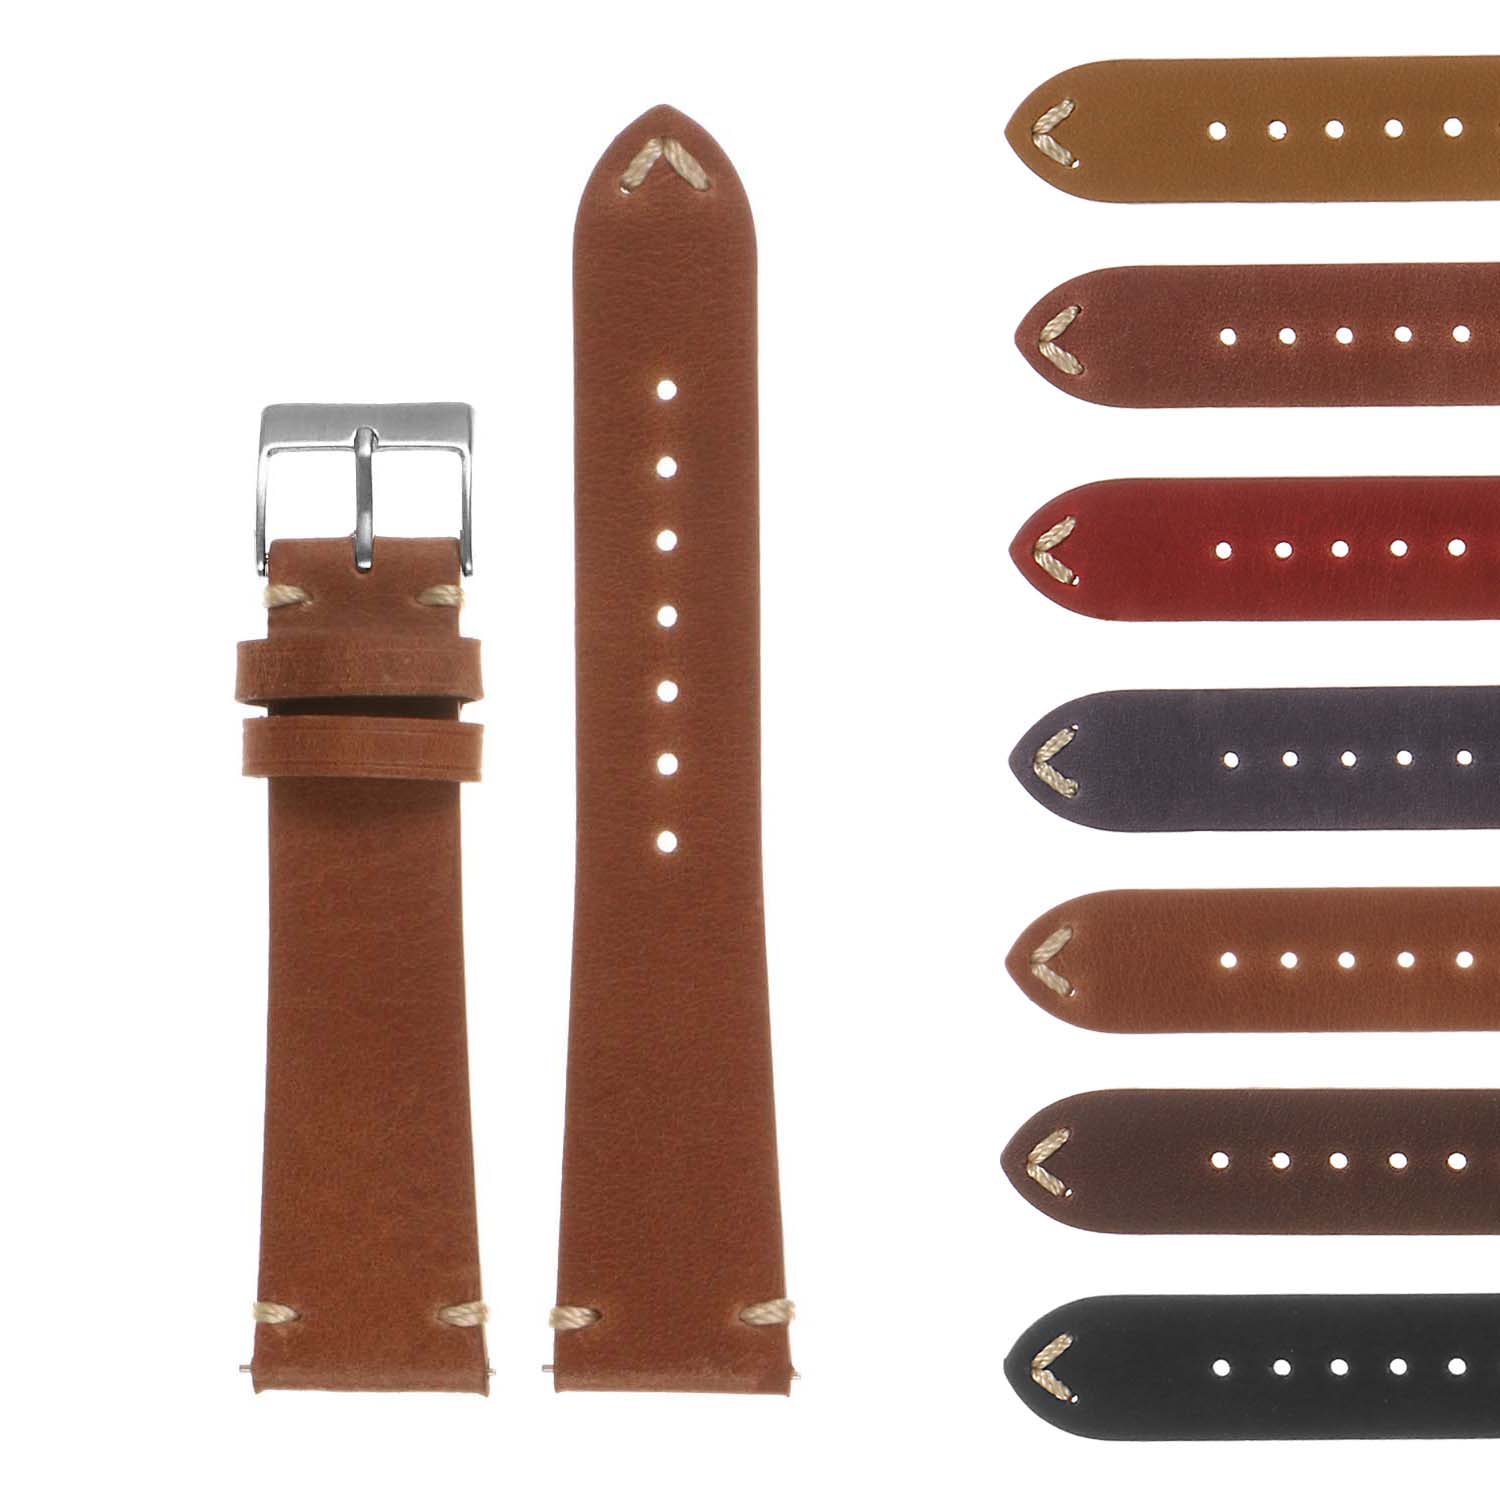 TRIBUTE II Hand-Stitched Classic Leather Watch Band